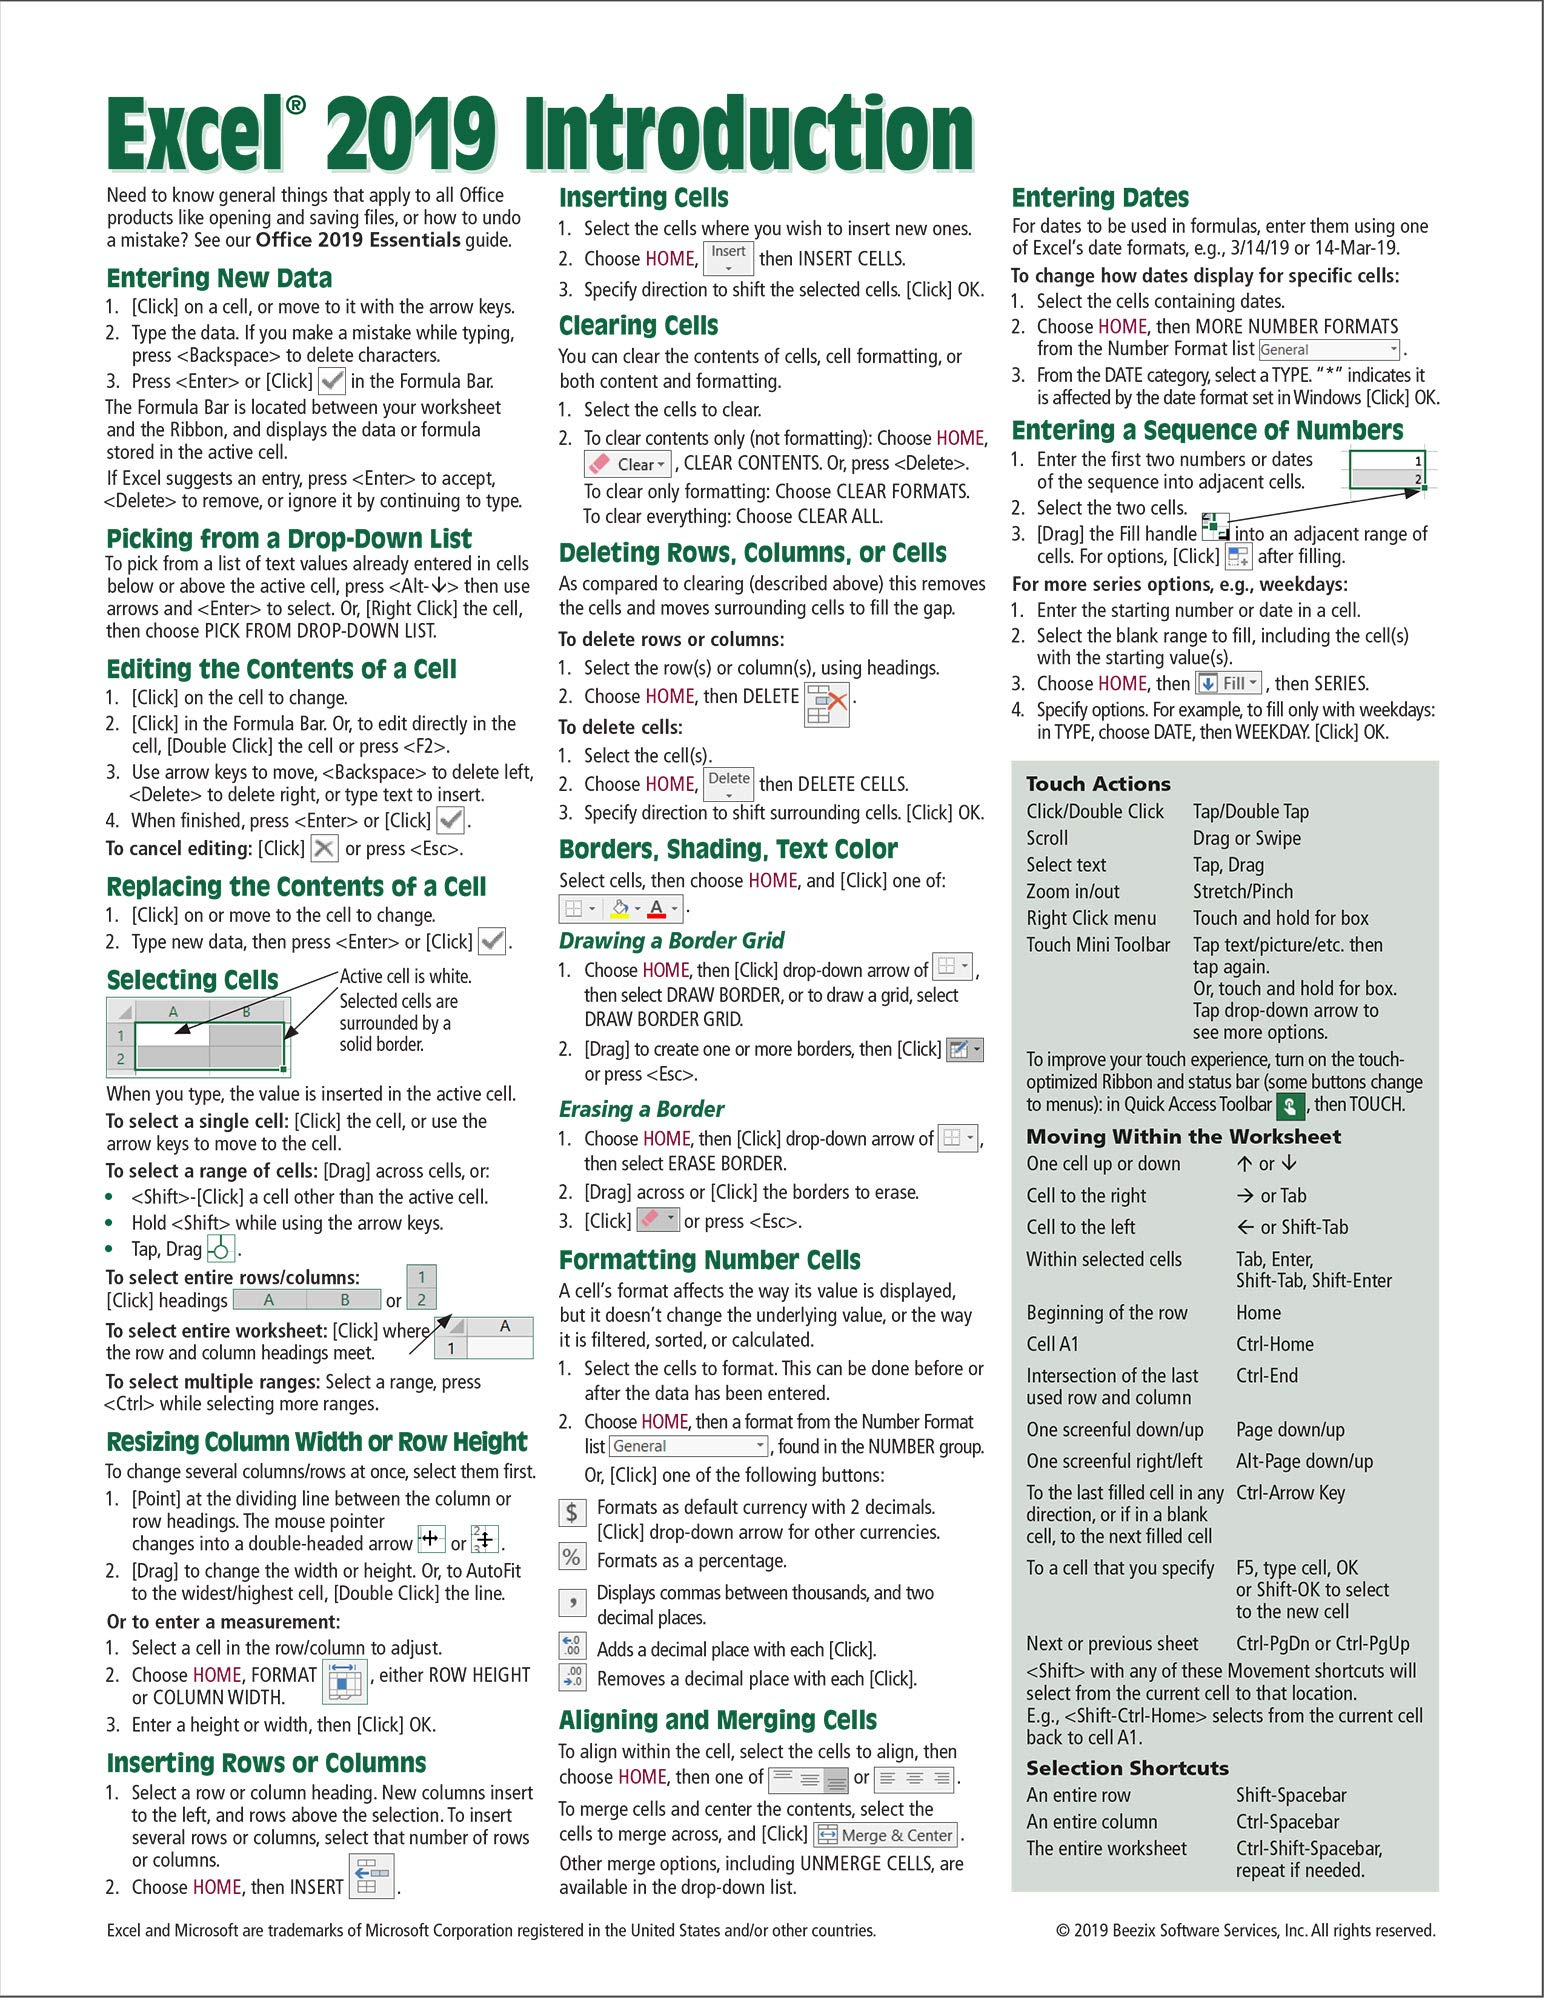 Microsoft Excel 20 Introduction Quick Reference Guide   Windows ...